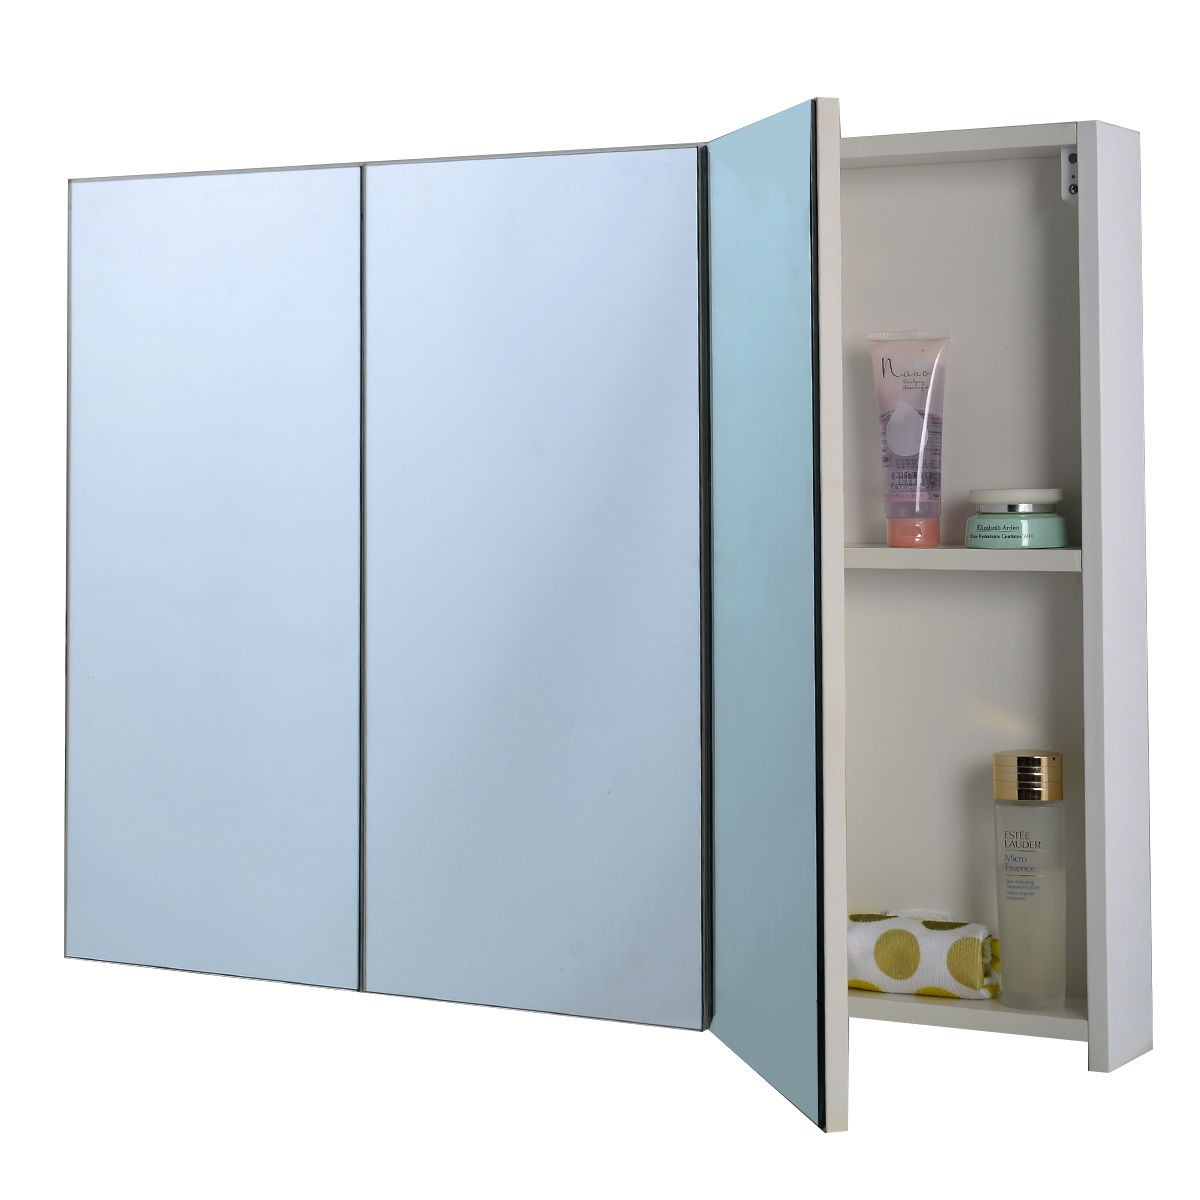 mirror door 36 20 wide wall mount mirrored bathroom medicine cabi